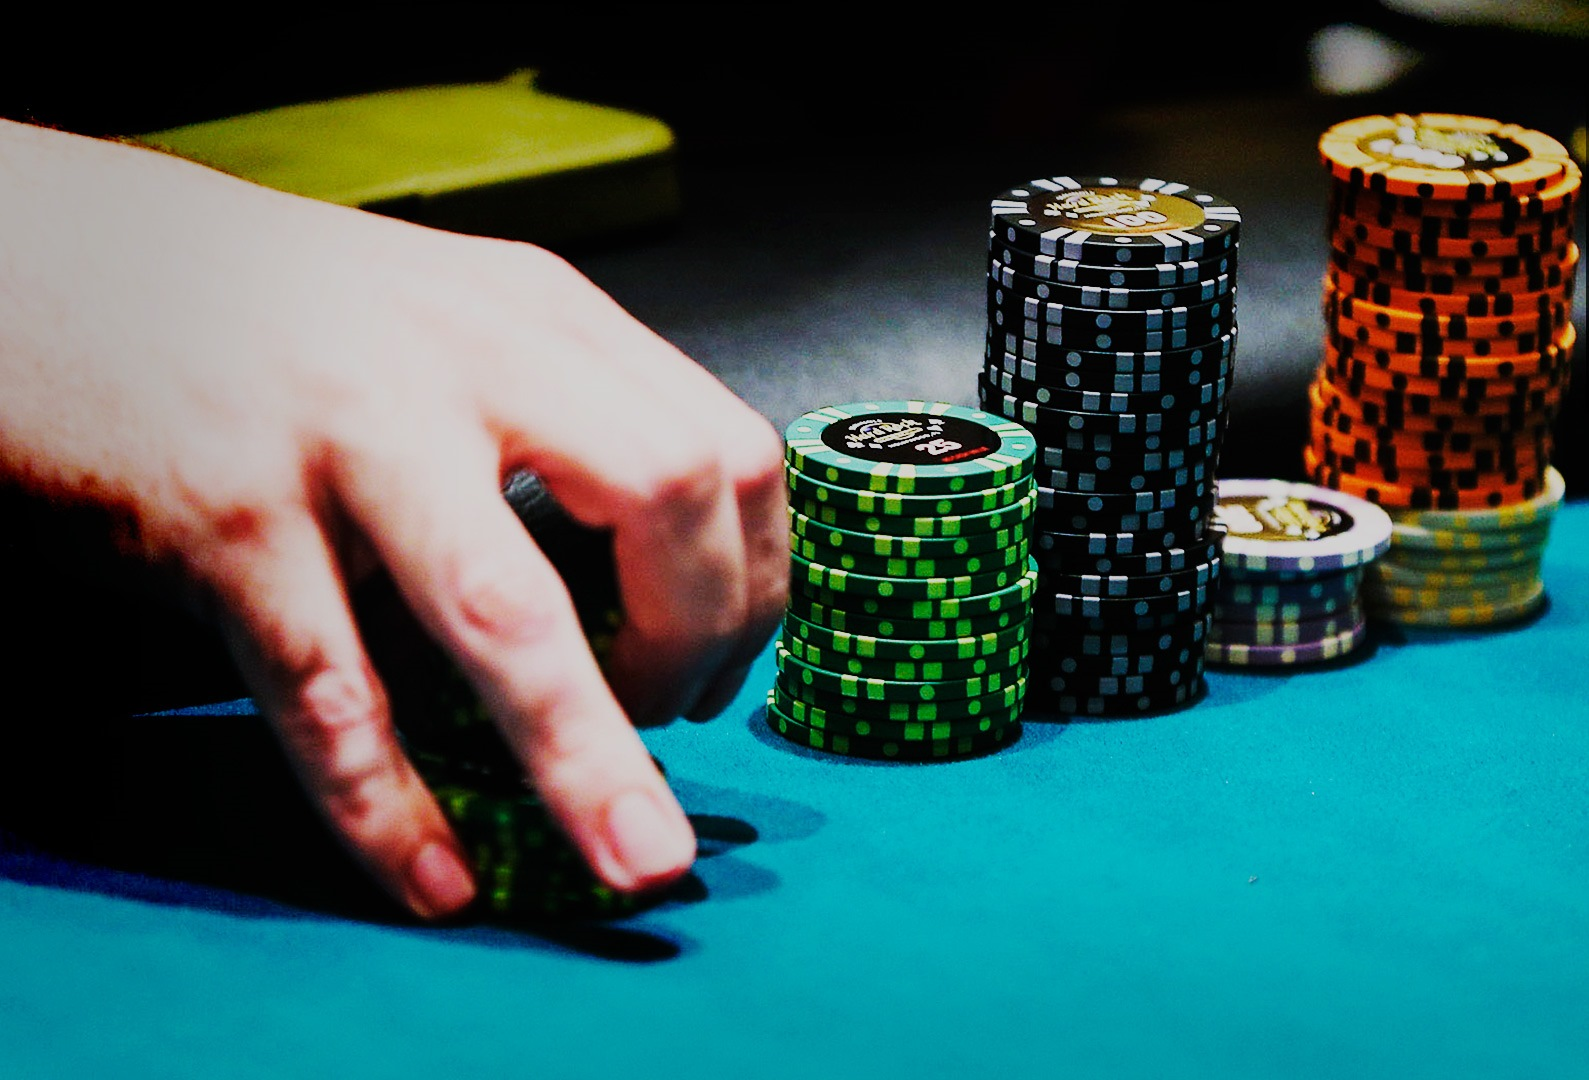 poker06 110314 getty ftrjpg ltsr126uj64016athjczcd2io d2314